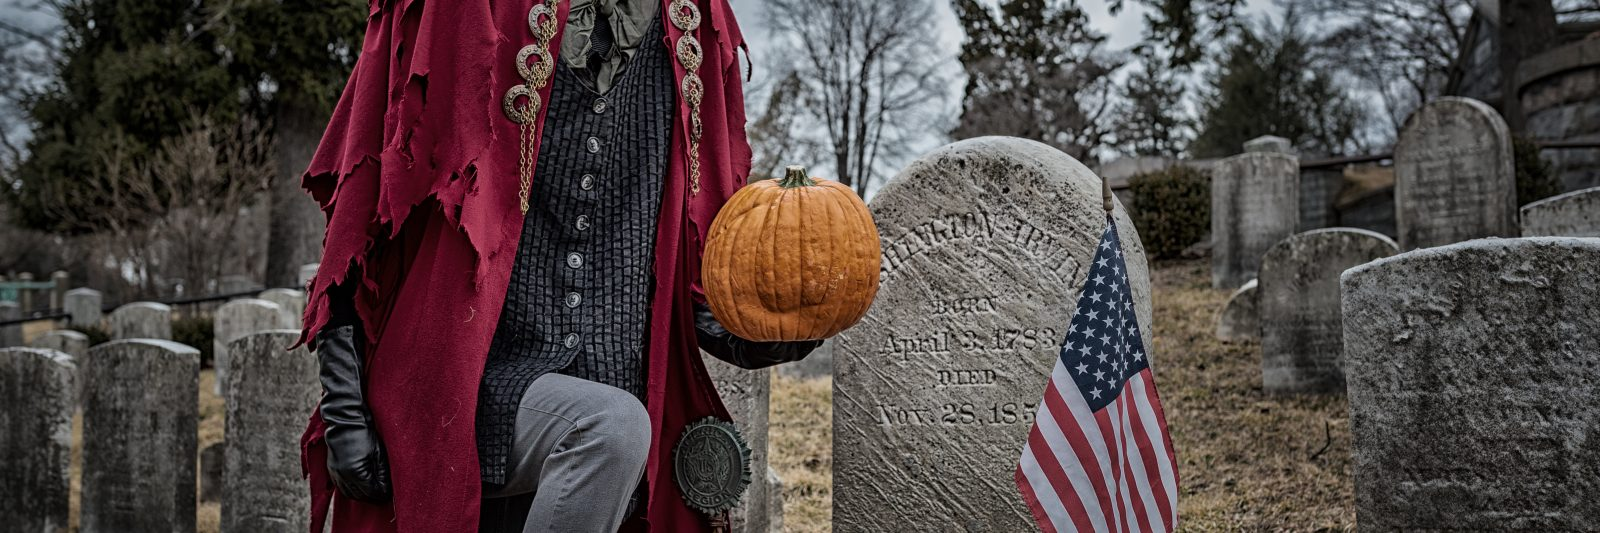 Headless Horseman kneeling at grave of Washington Irving